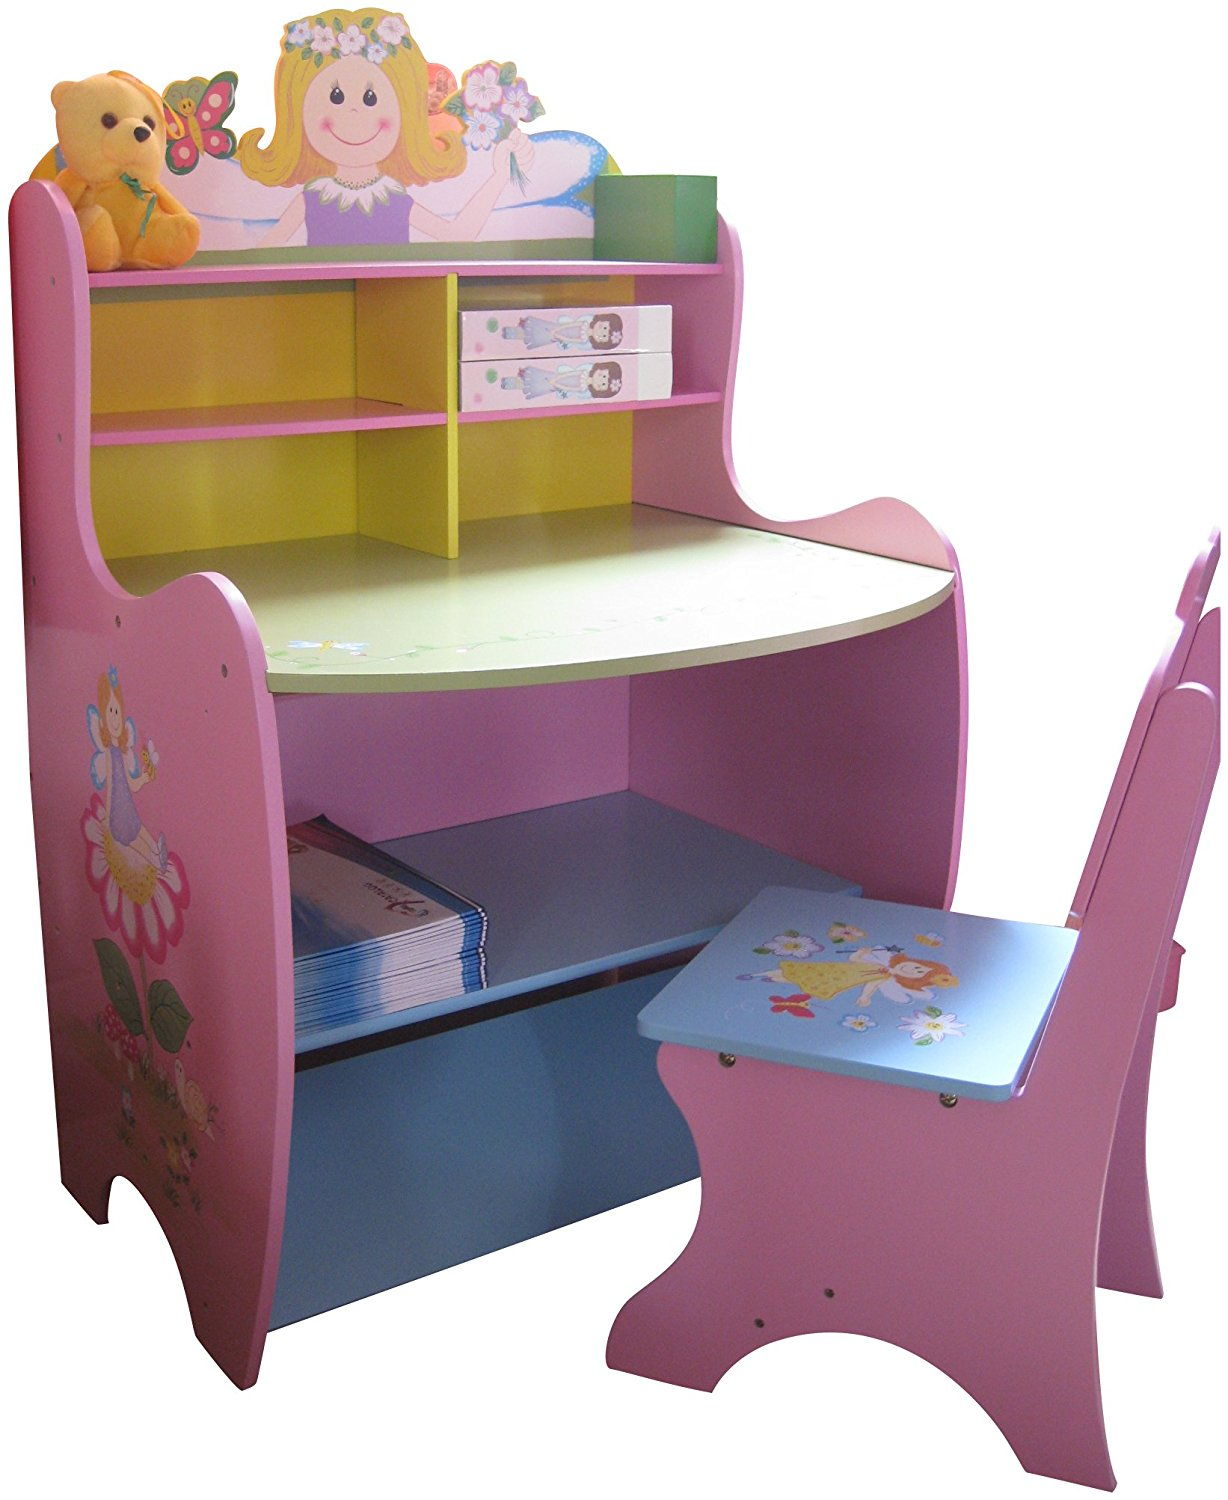 rolling chair furniture get comfortable seating kids and for adjuster cool cushion with cheap quality desk pink high